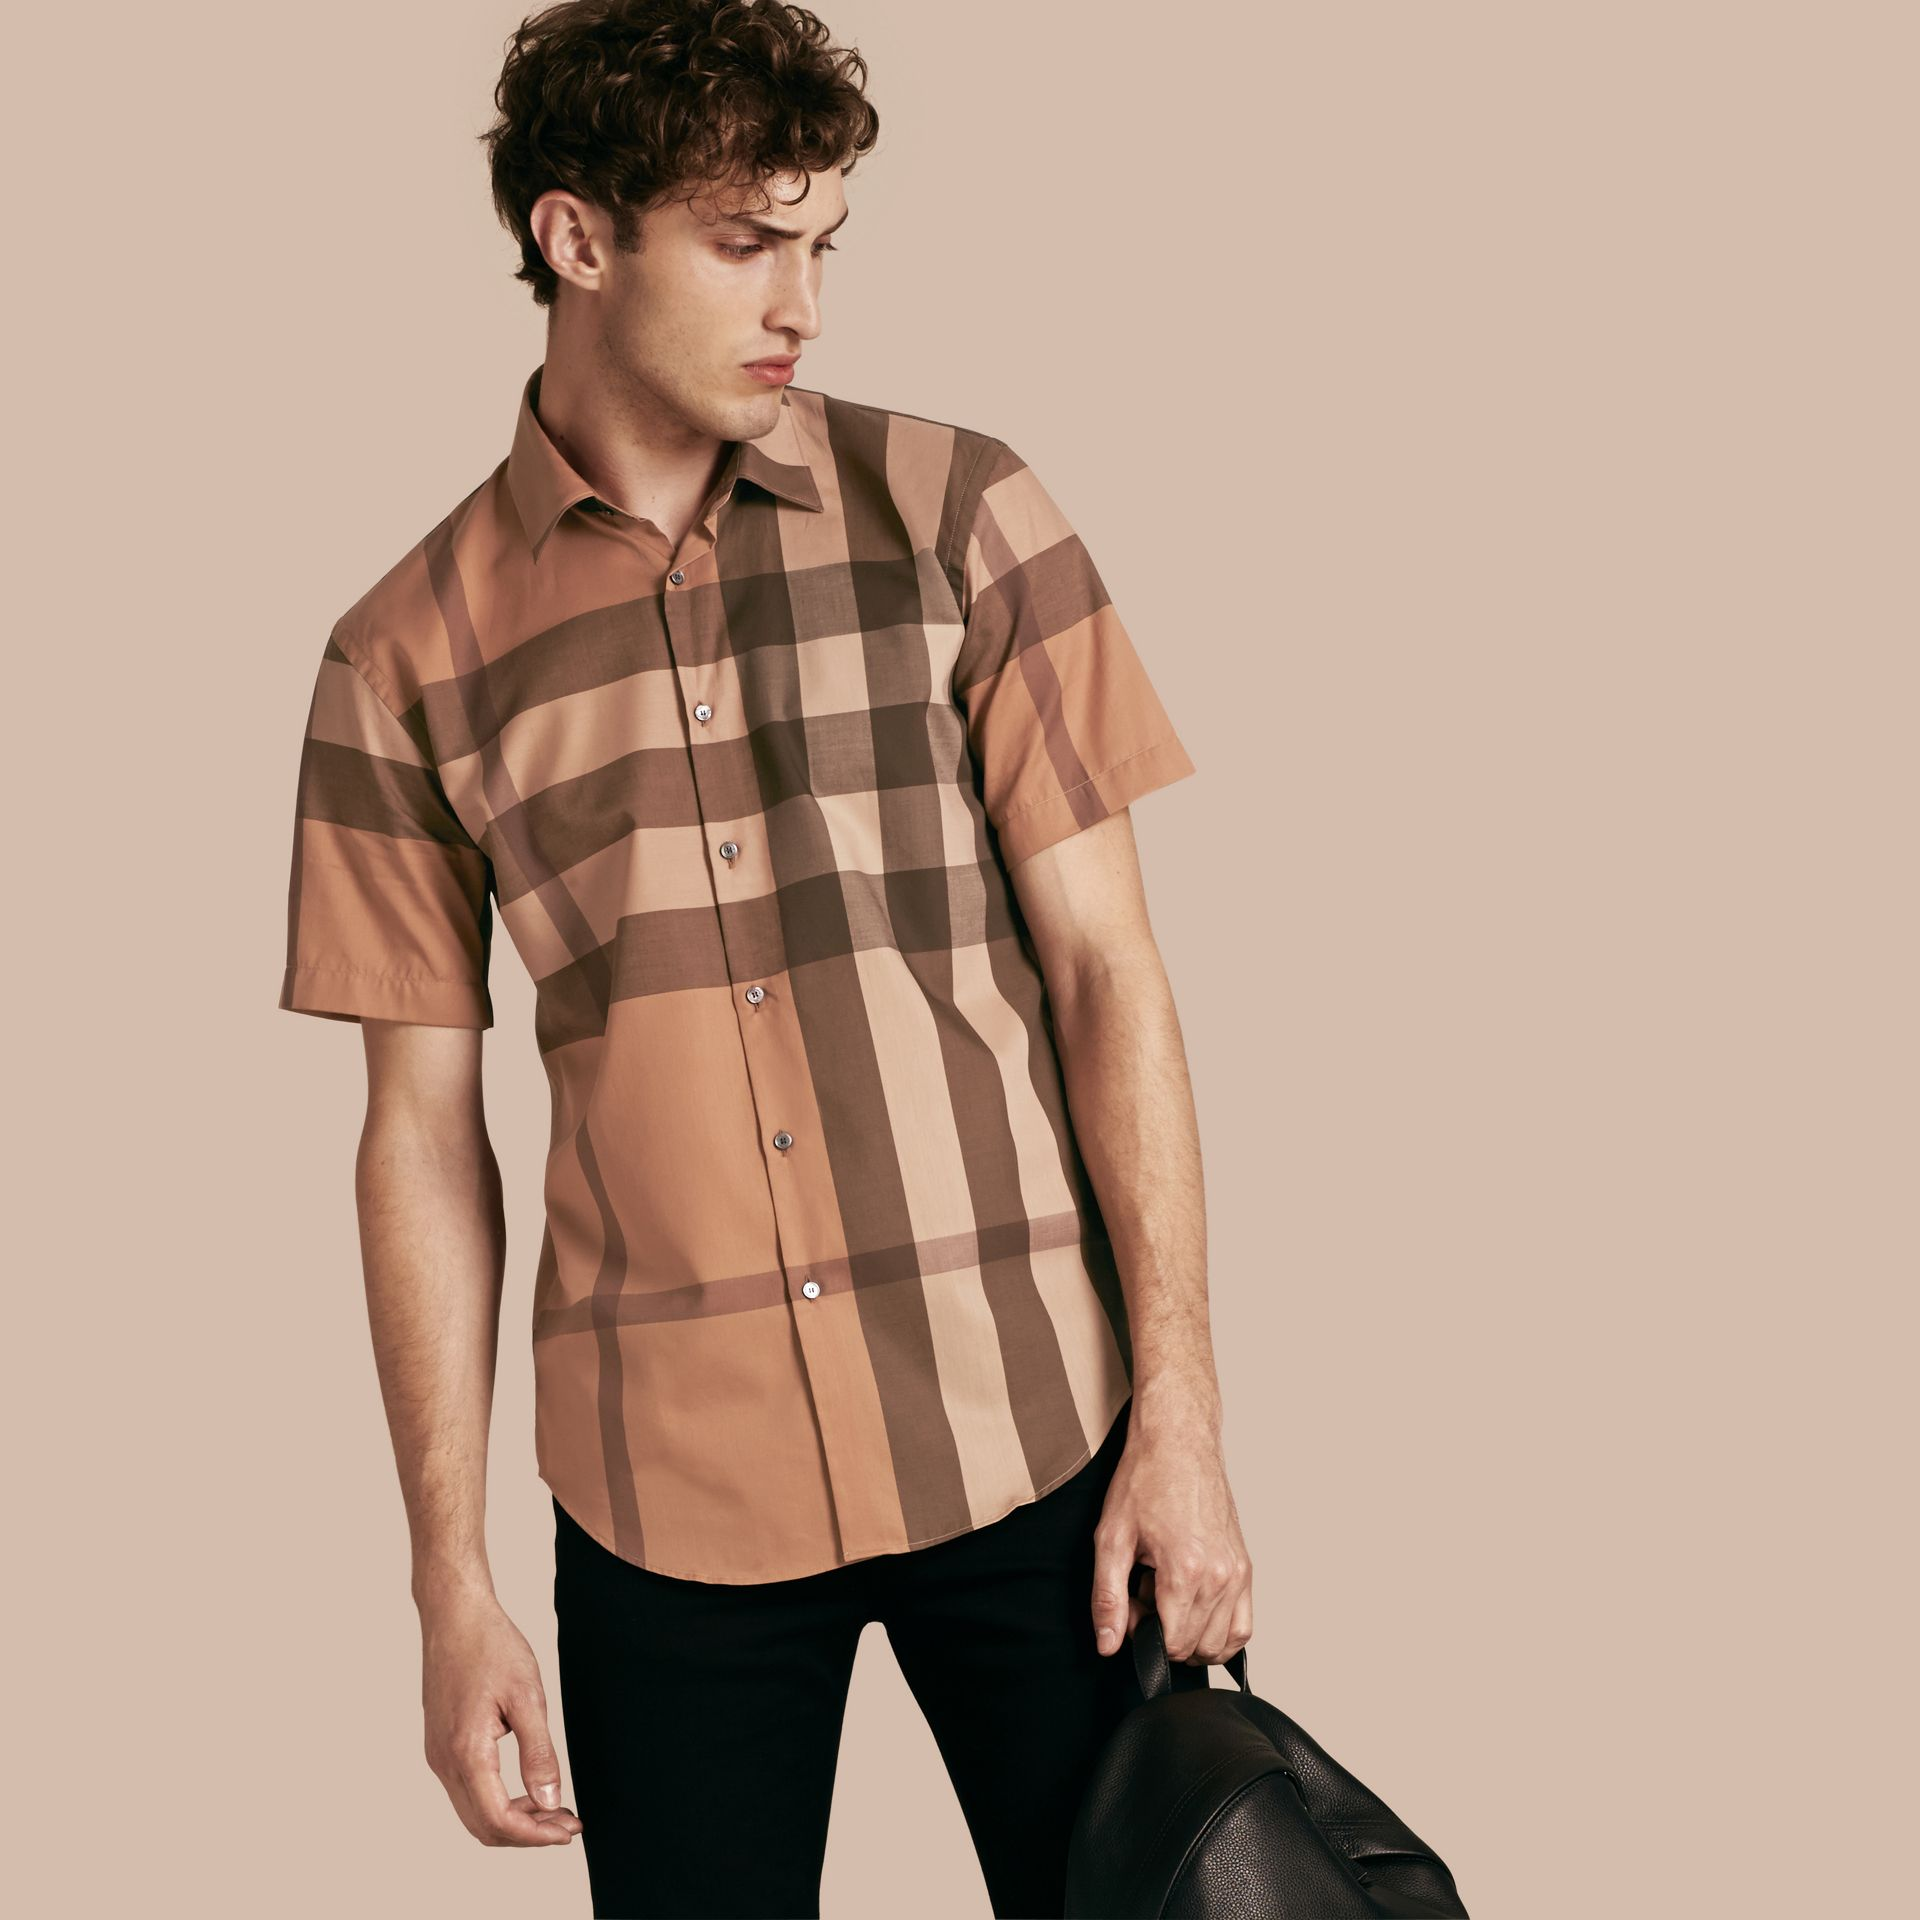 Dark camel Short-sleeved Check Cotton Shirt Dark Camel - gallery image 1